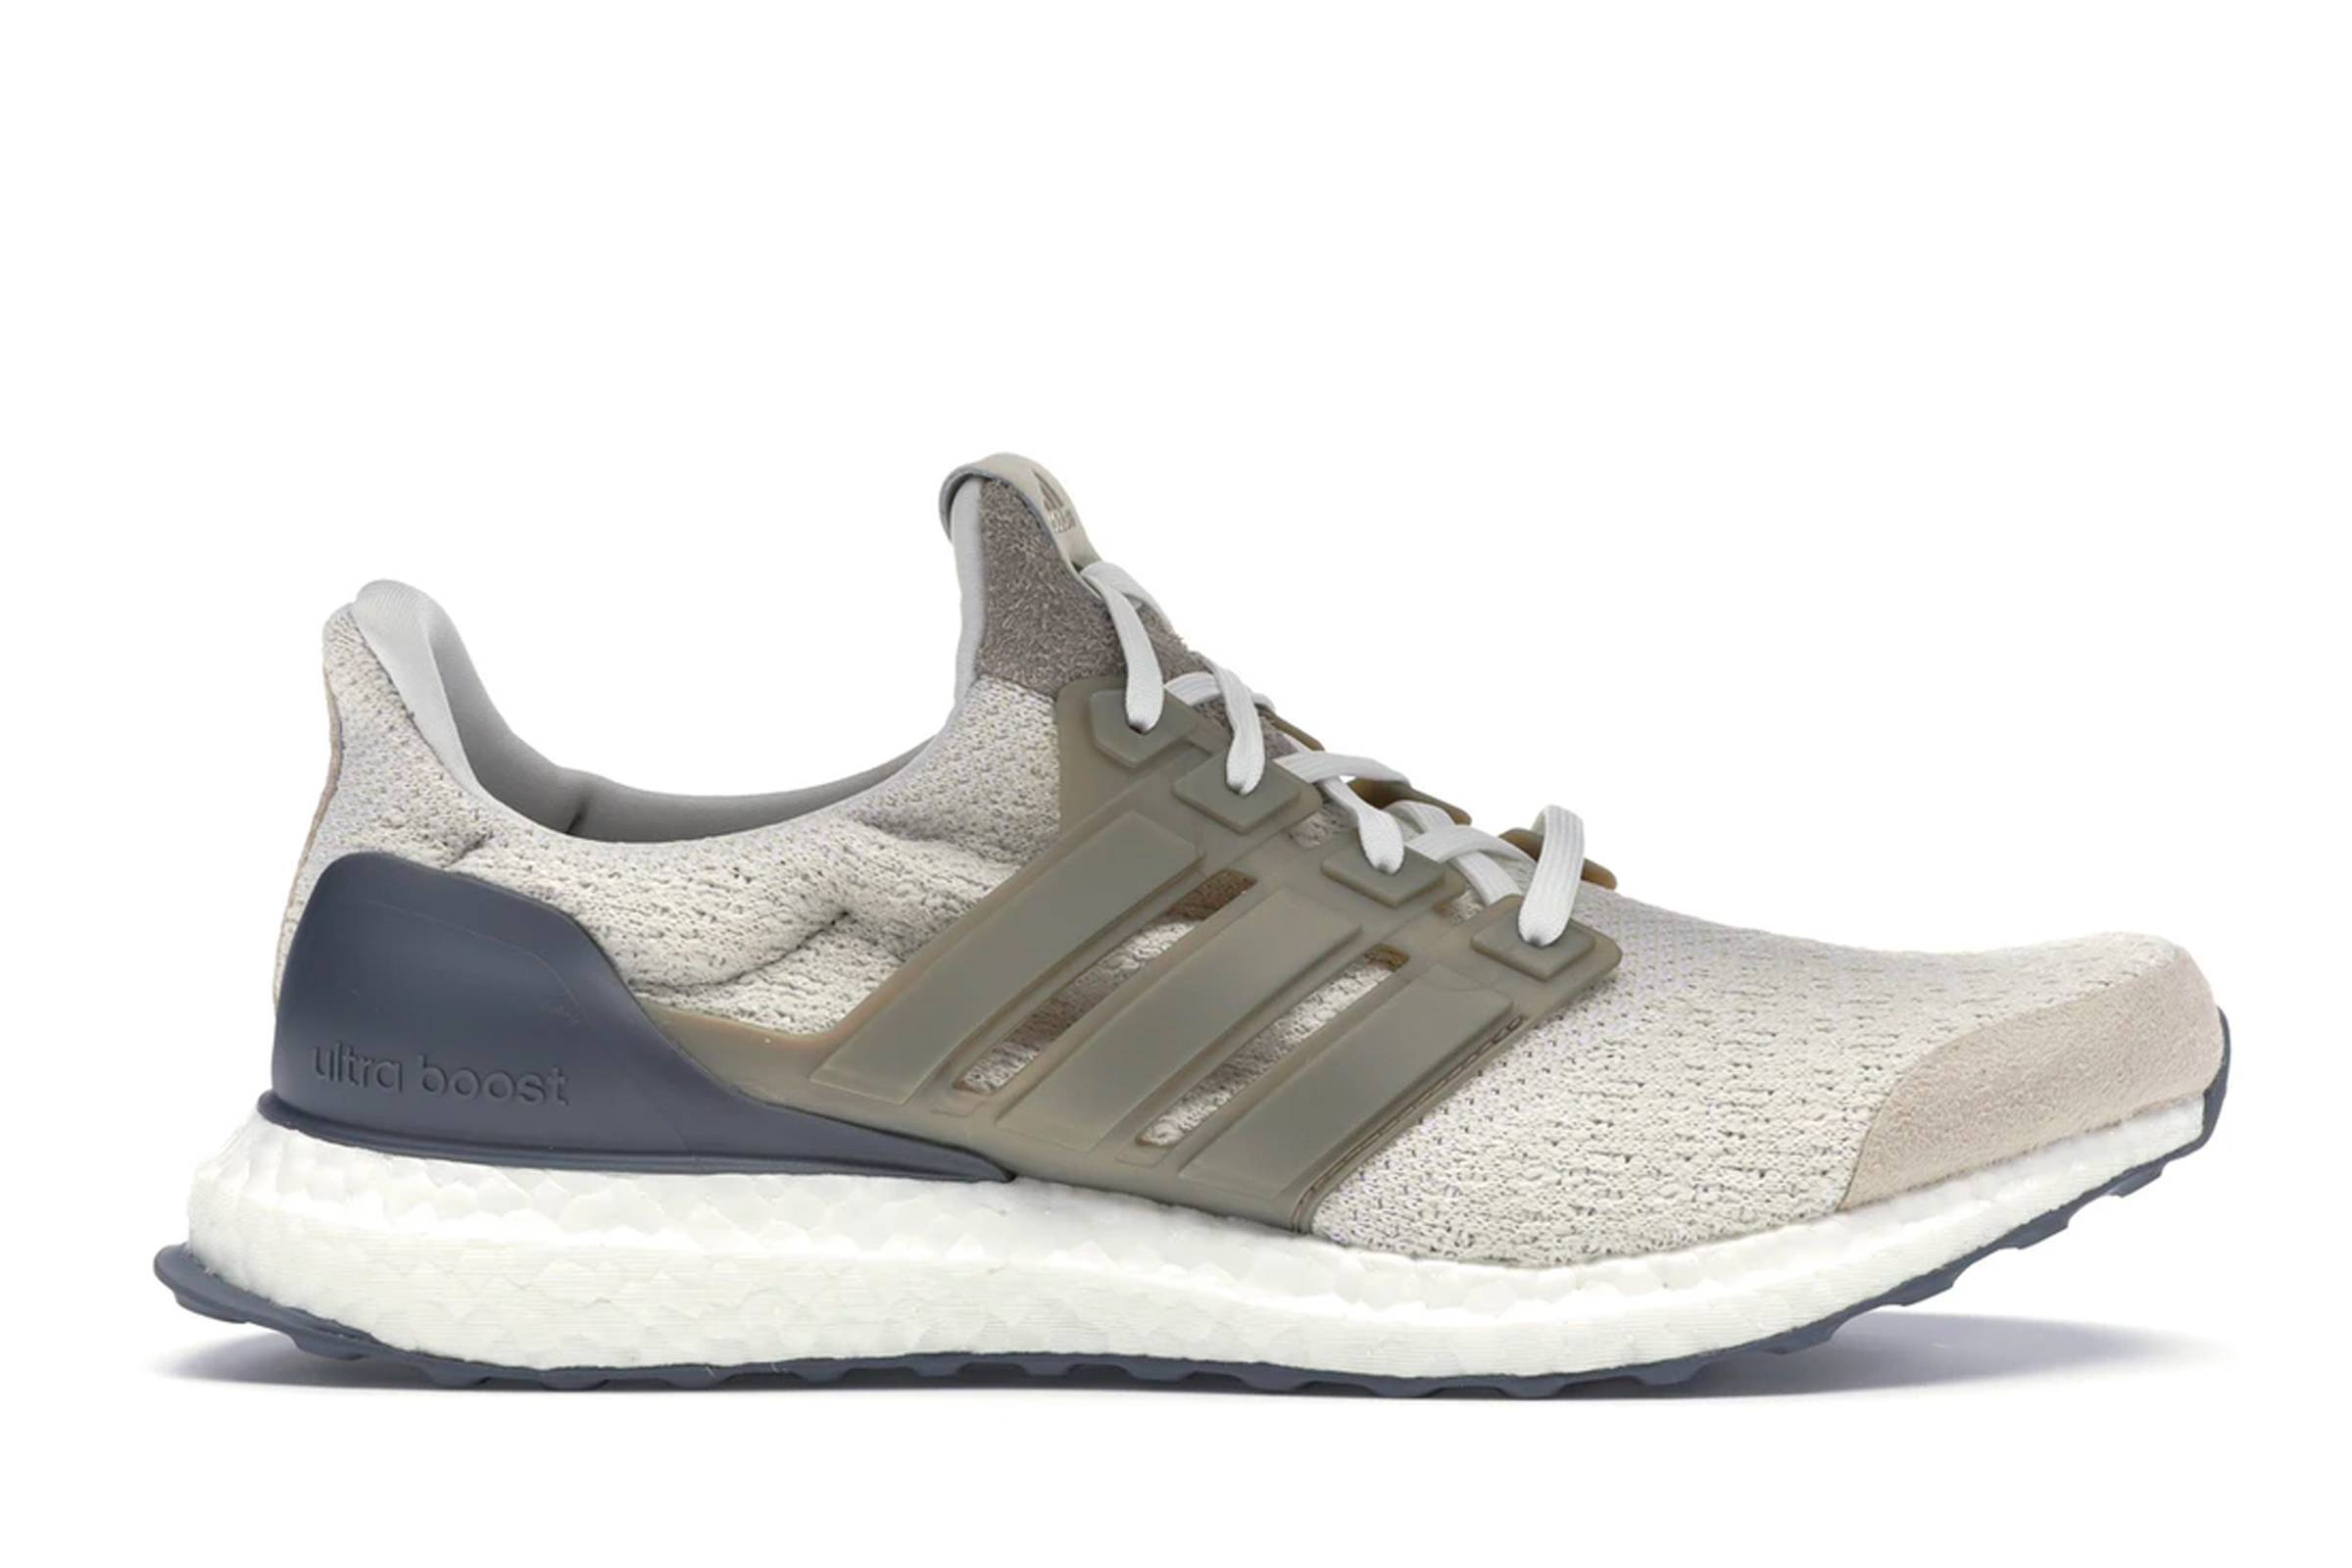 """Sneakersnstuff x Social Status x adidas Ultra Boost Lux """"Vintage White"""""""